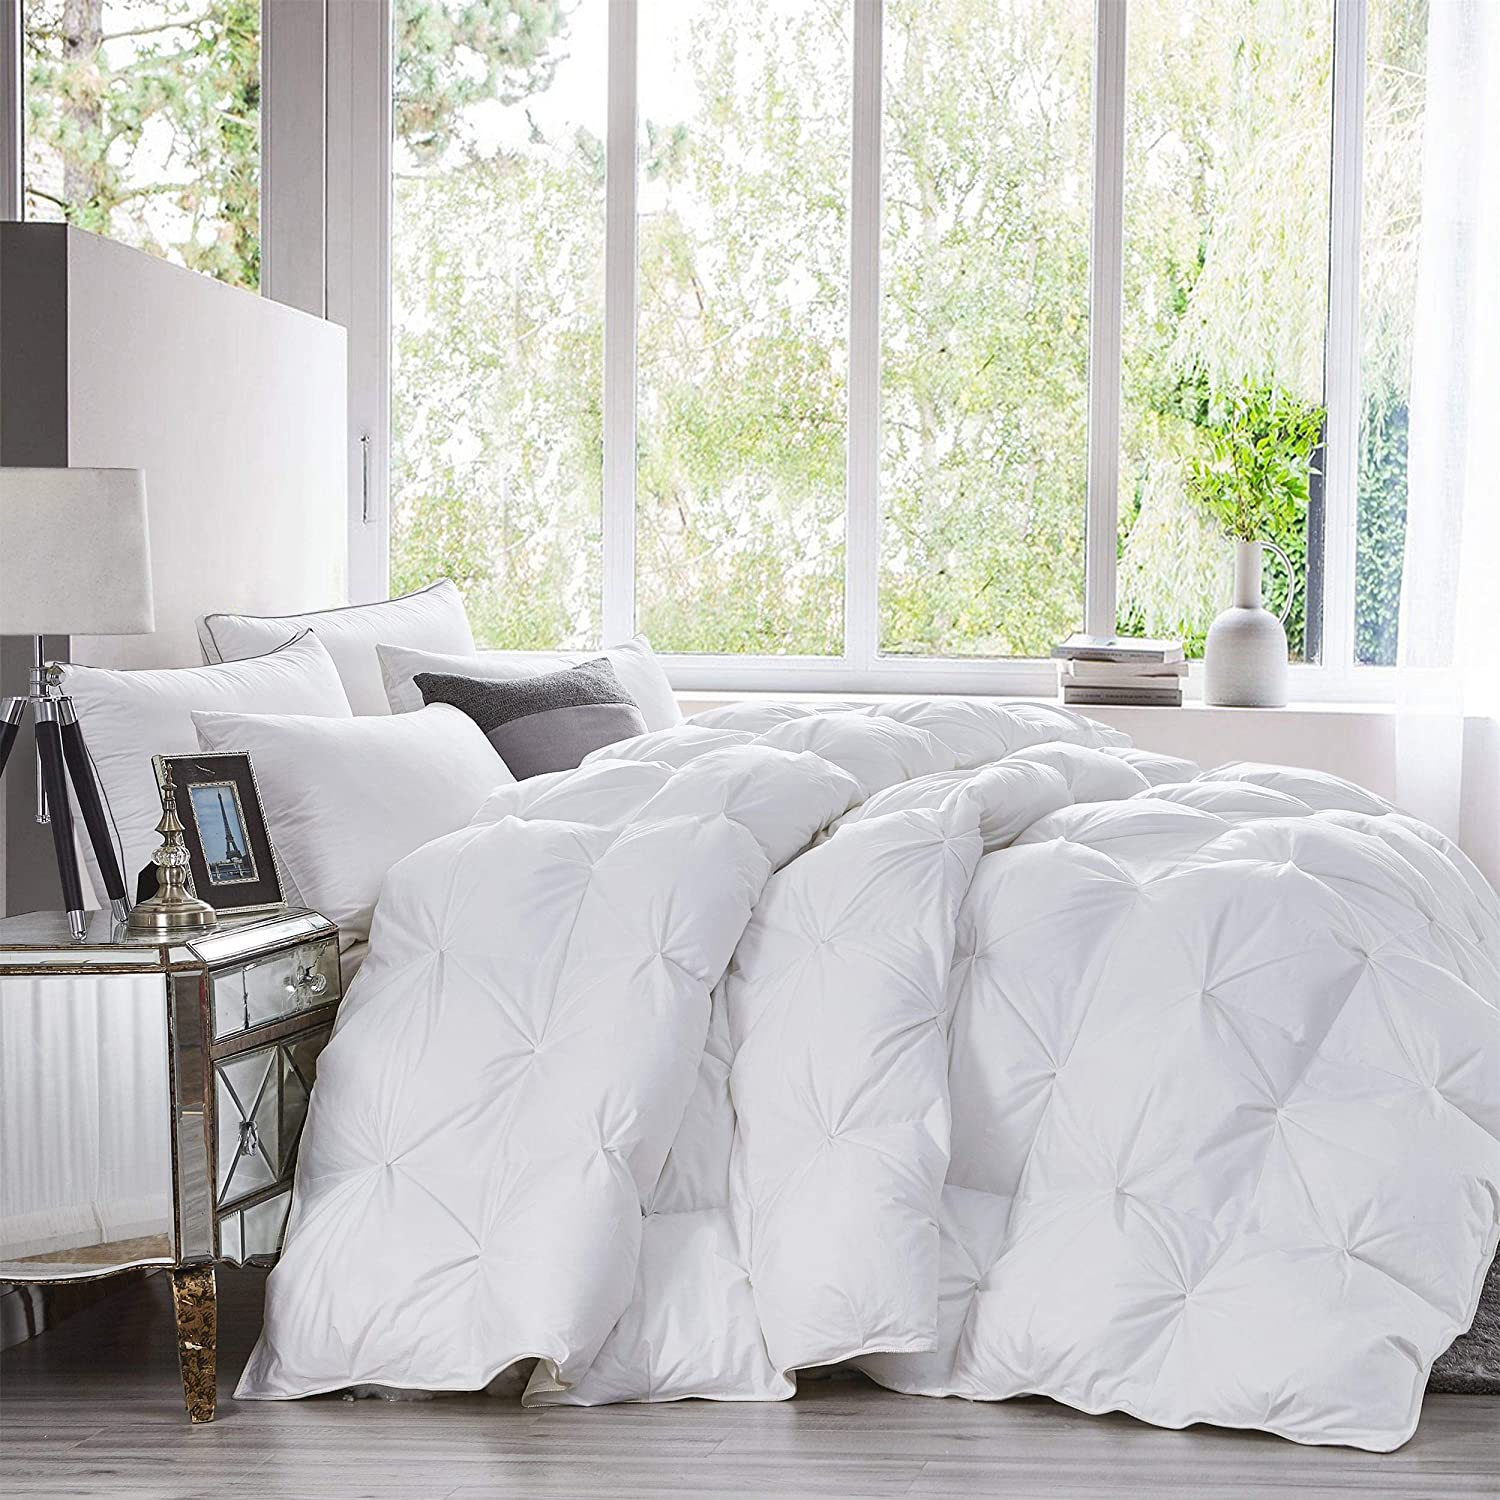 Luxurious Heavy Queen Size Goose Down Comforter Duvet Insert, Classic Pinch Pleat Style, 750+ Fill Power, 60 oz Fill Weight, 1200 Thread Count 100% Egyptian Cotton Shell (Pinch Pleat, Queen, White)